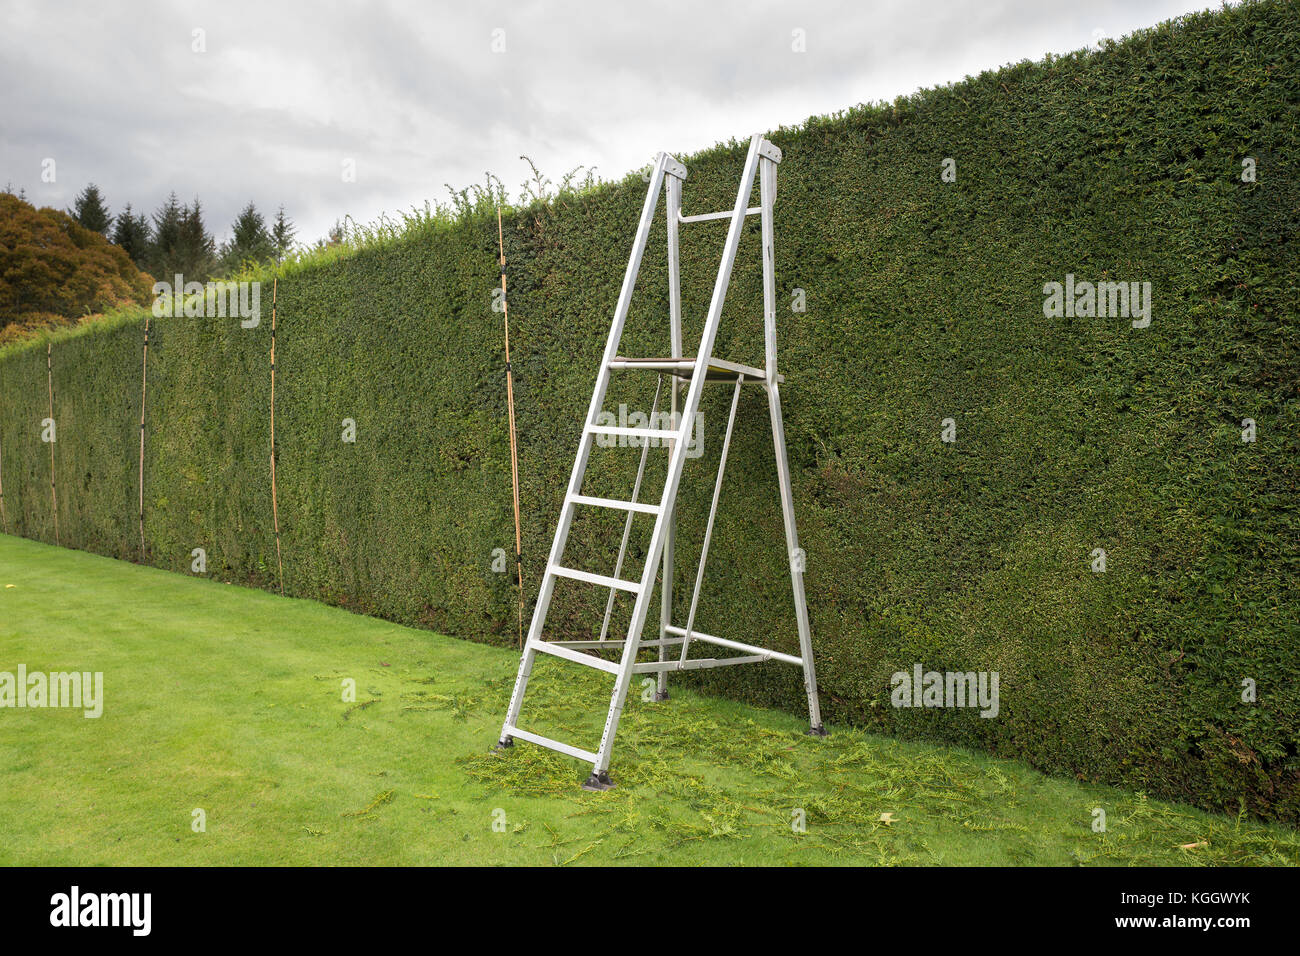 Step ladder in place with height marking canes for trimming a tall yew hedge in Devon UK - Stock Image